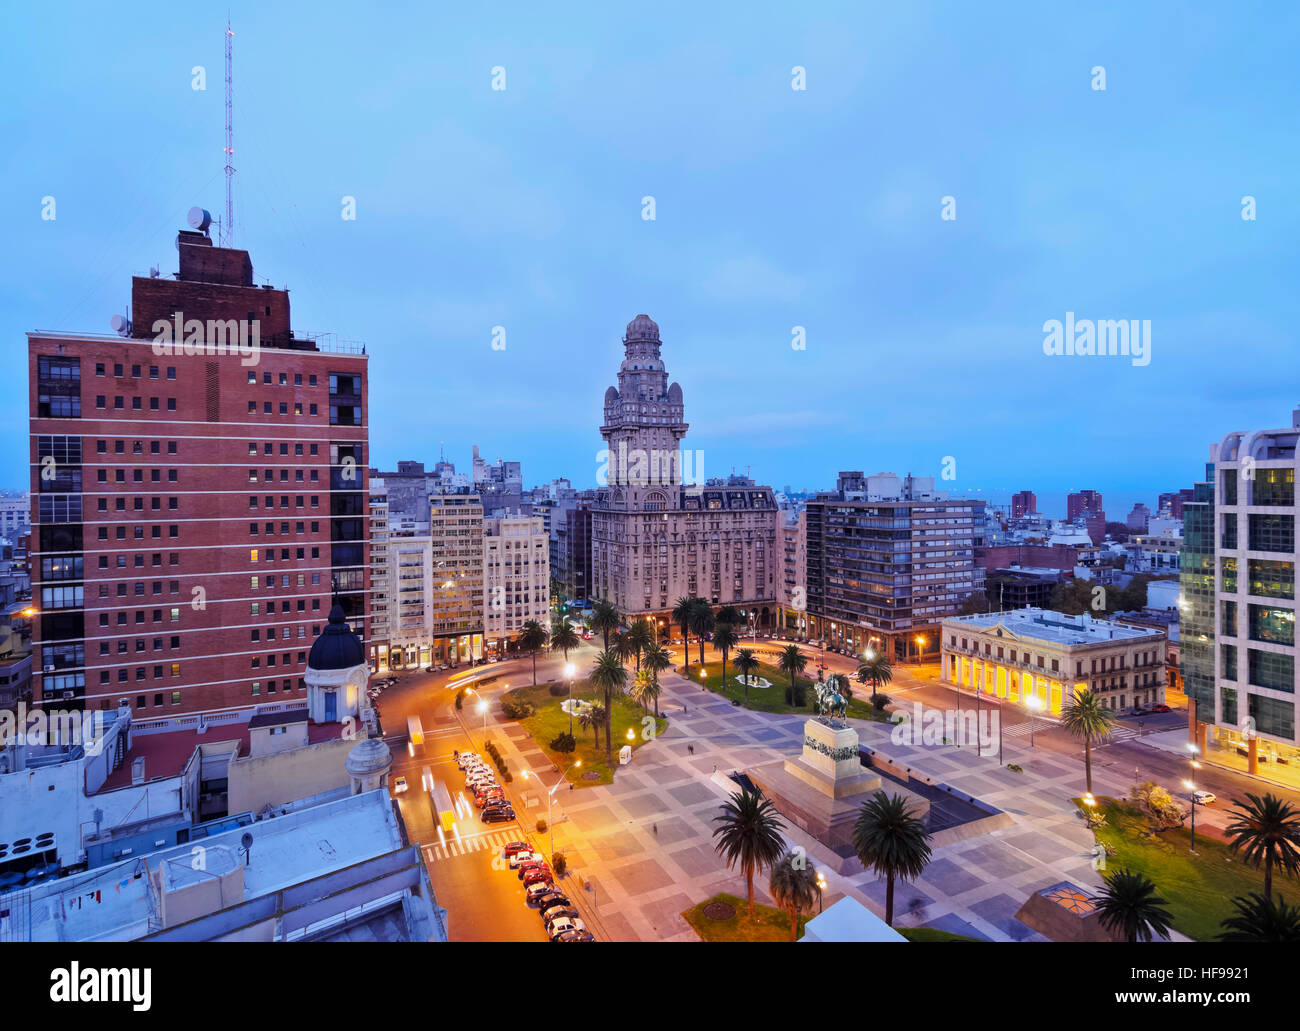 View of Independence Square at dusk, Montevideo, Uruguay - Stock Image